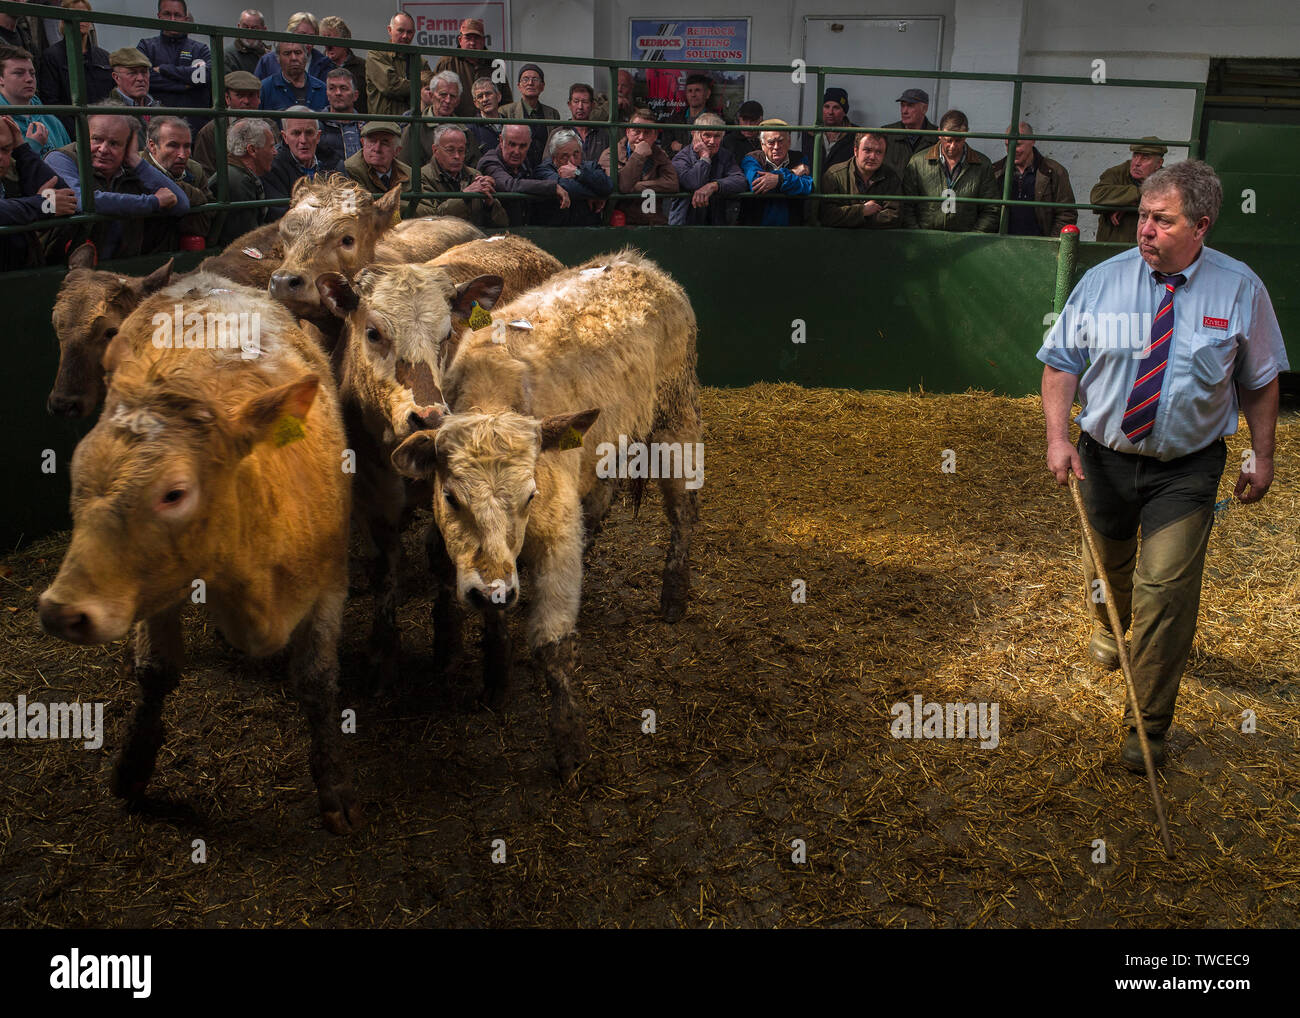 Hallworthy Stockyard, Kivells livestock market Cornwall Stock Photo